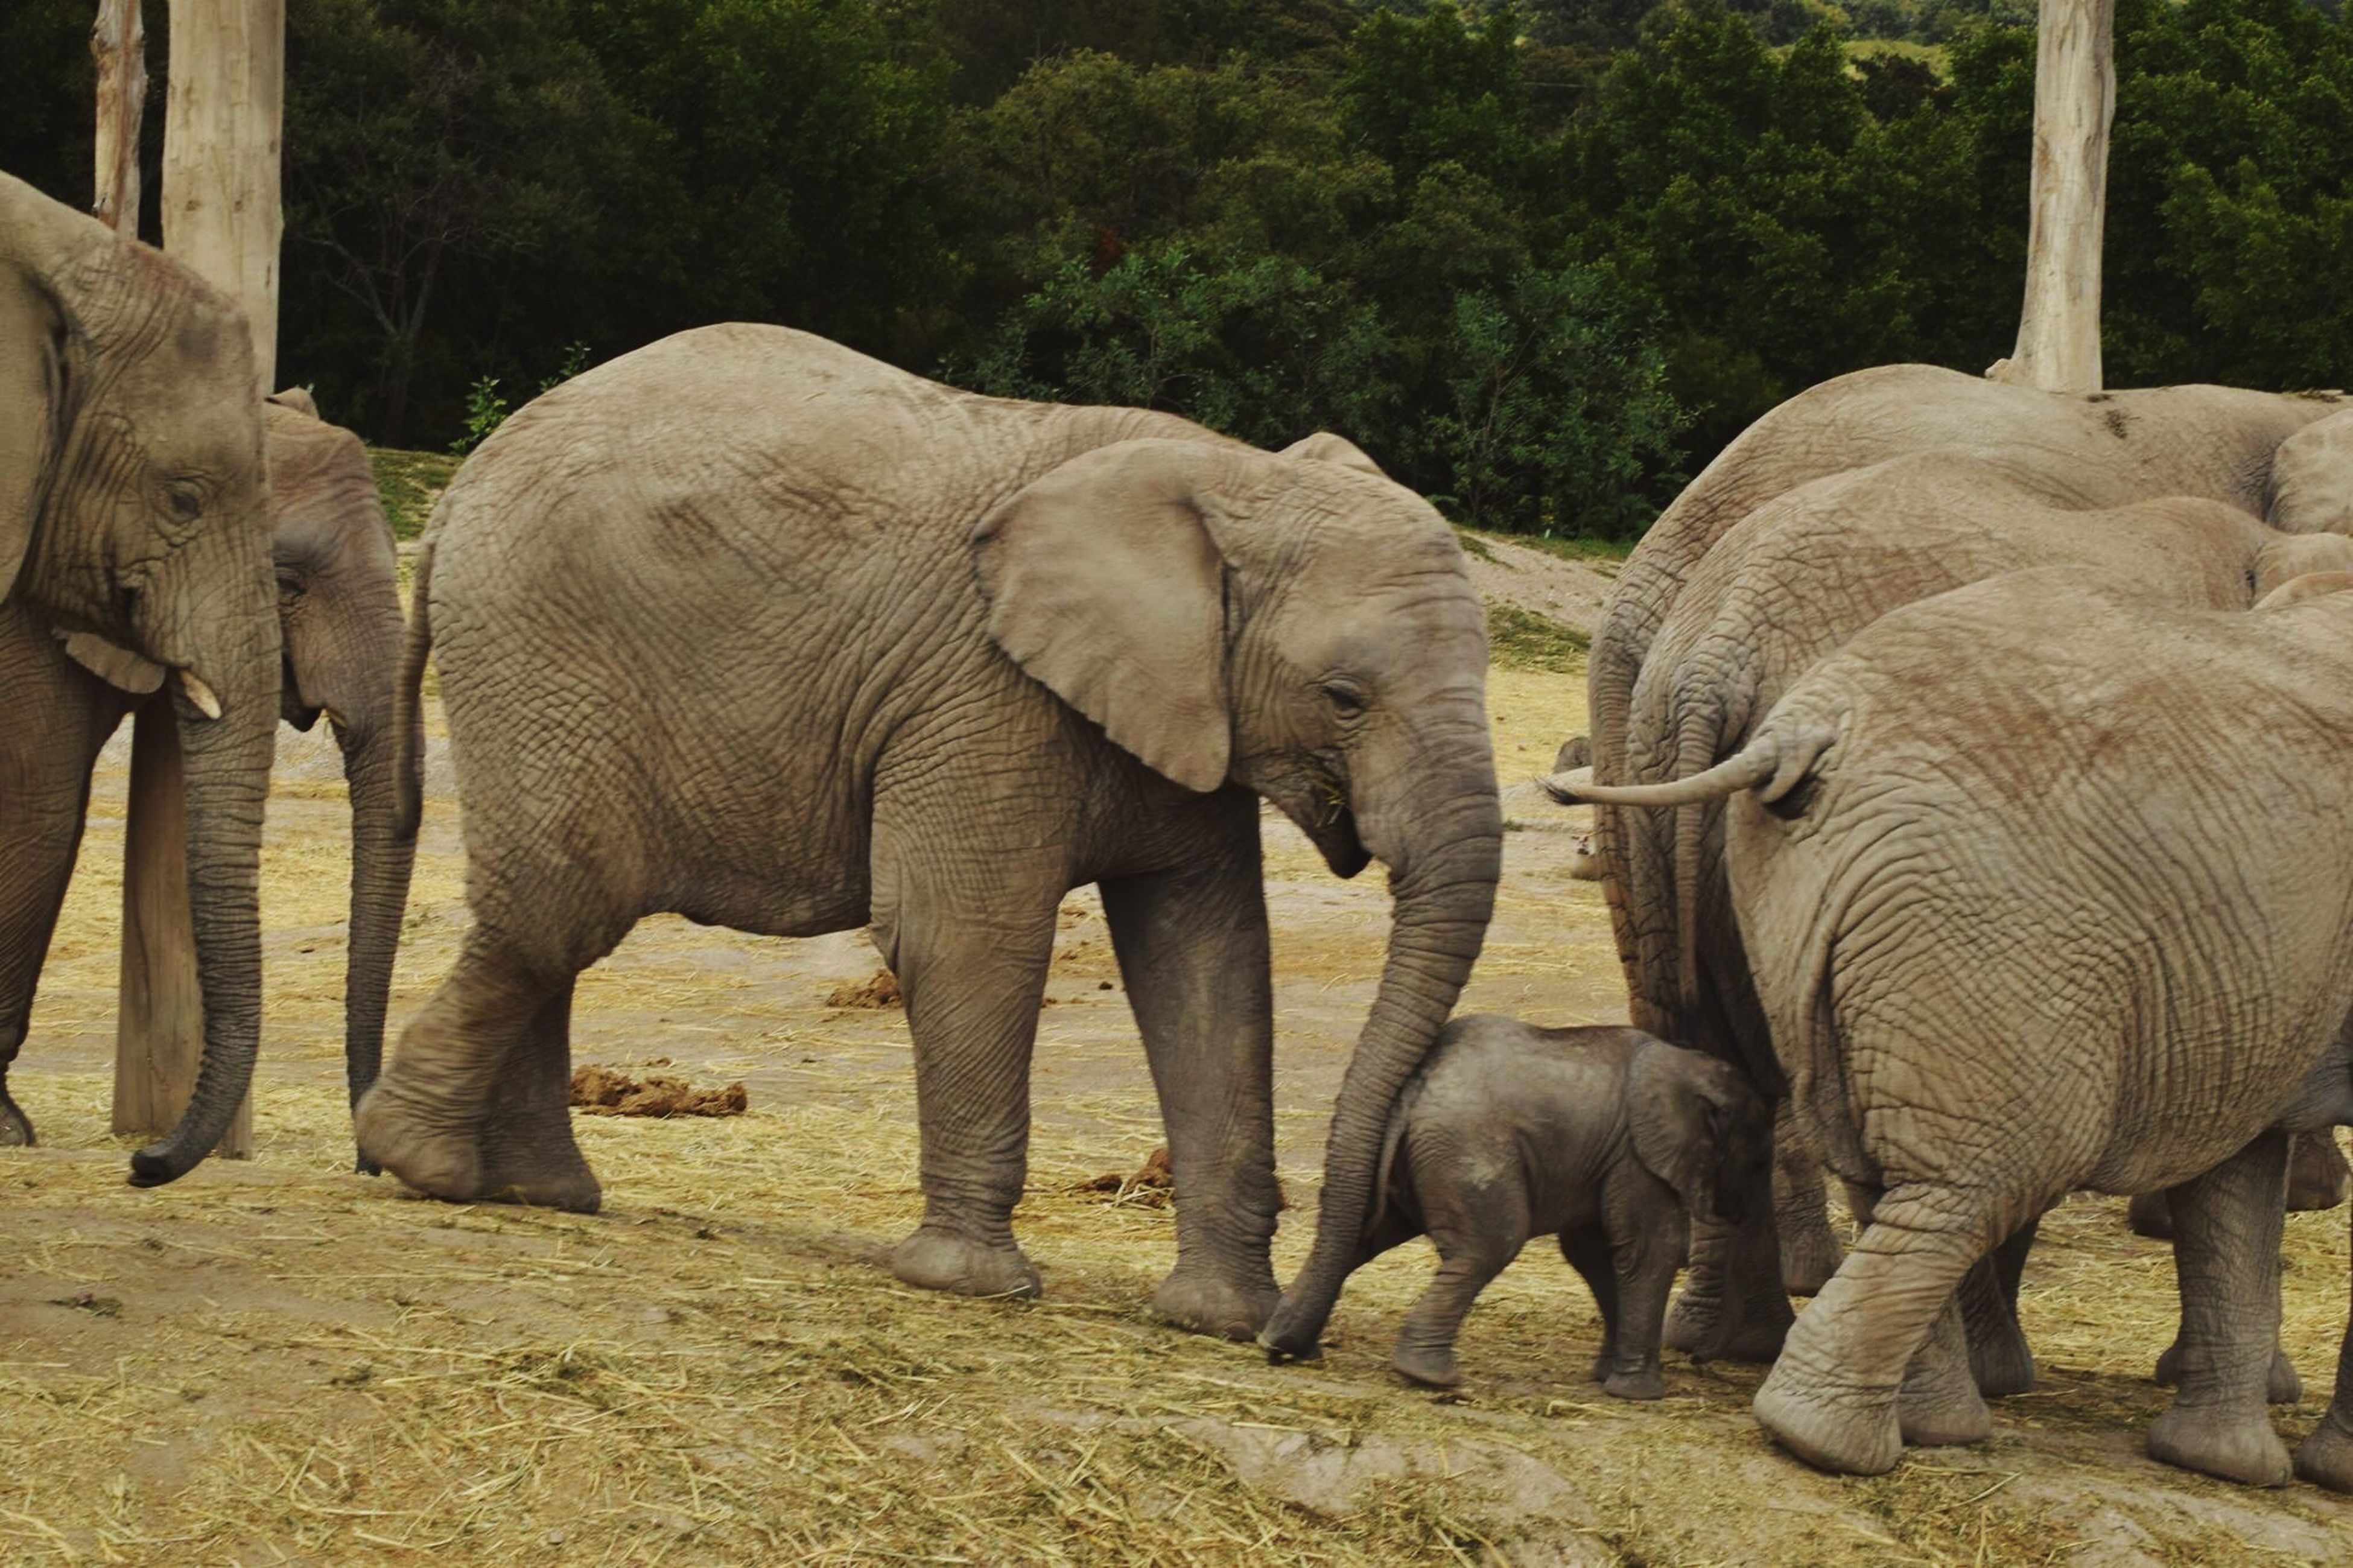 elephant, animals in the wild, animal themes, animal wildlife, mammal, young animal, no people, nature, animal family, day, elephant calf, outdoors, safari animals, tree, field, animal trunk, togetherness, african elephant, landscape, tusk